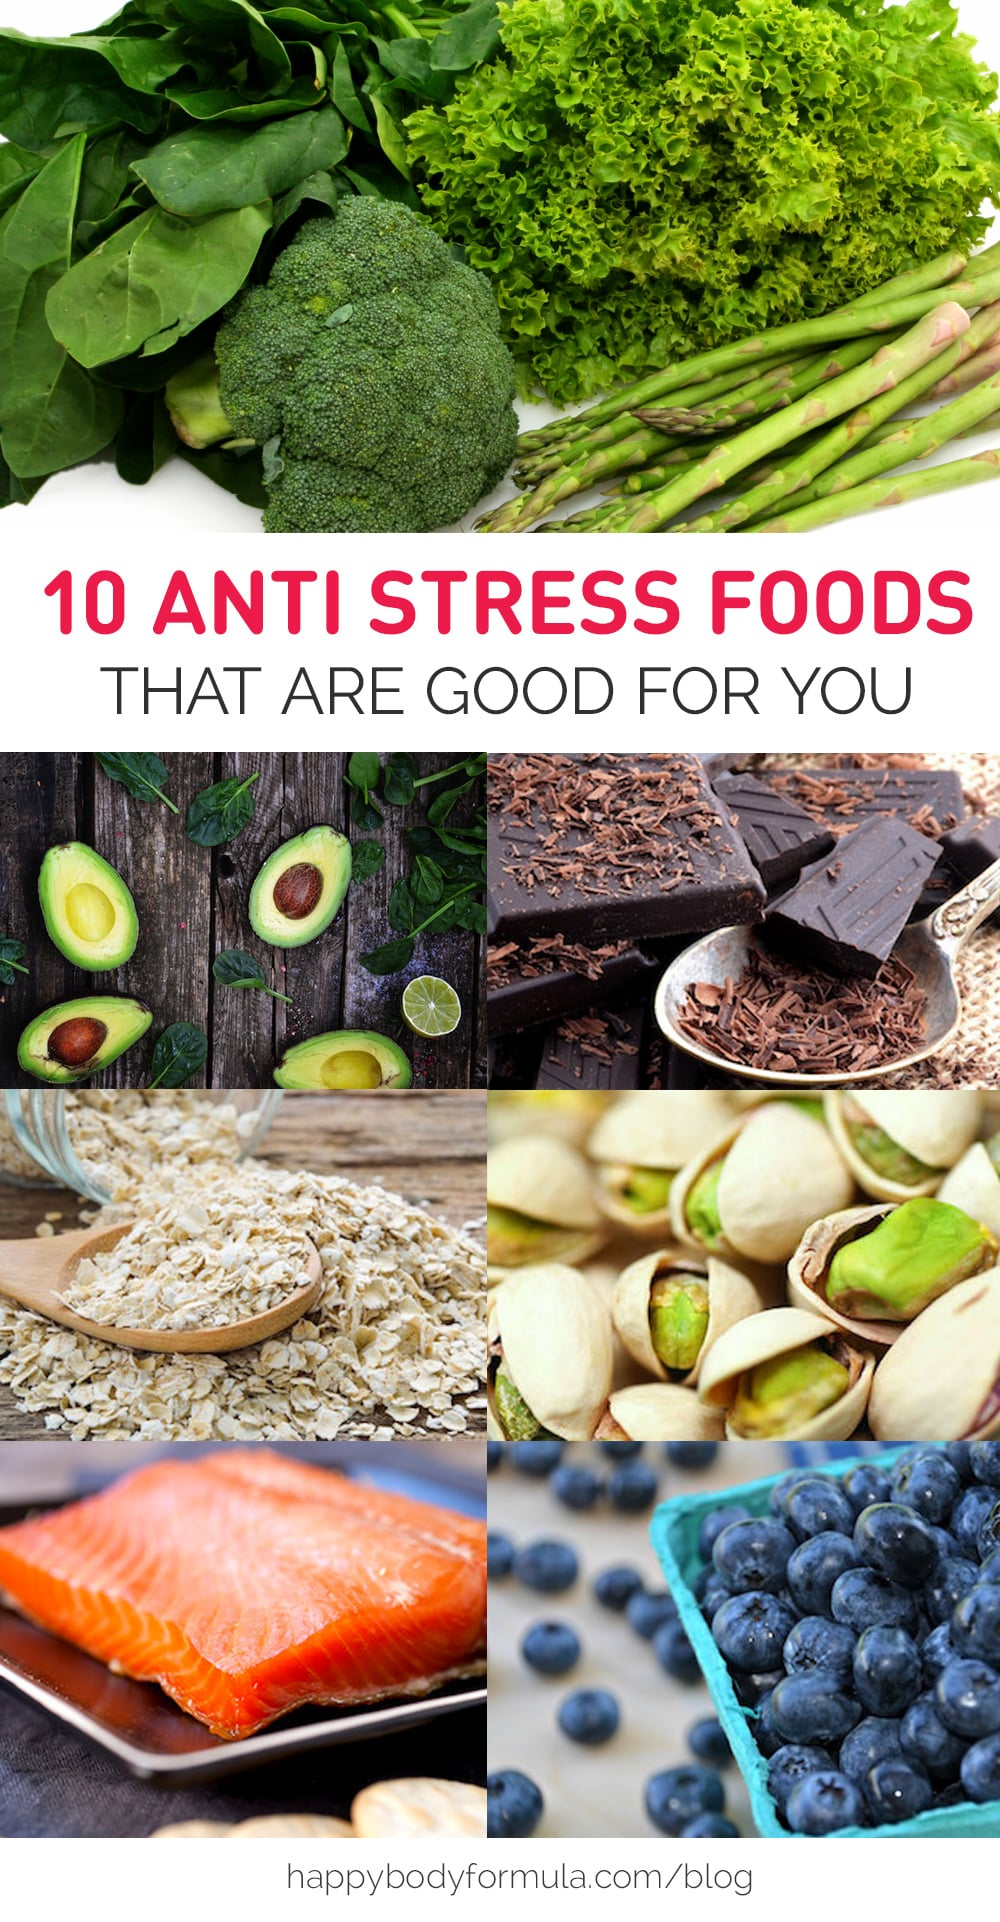 10 Anti Stress Foods That Are Good For You | HappyBodyFormula.com